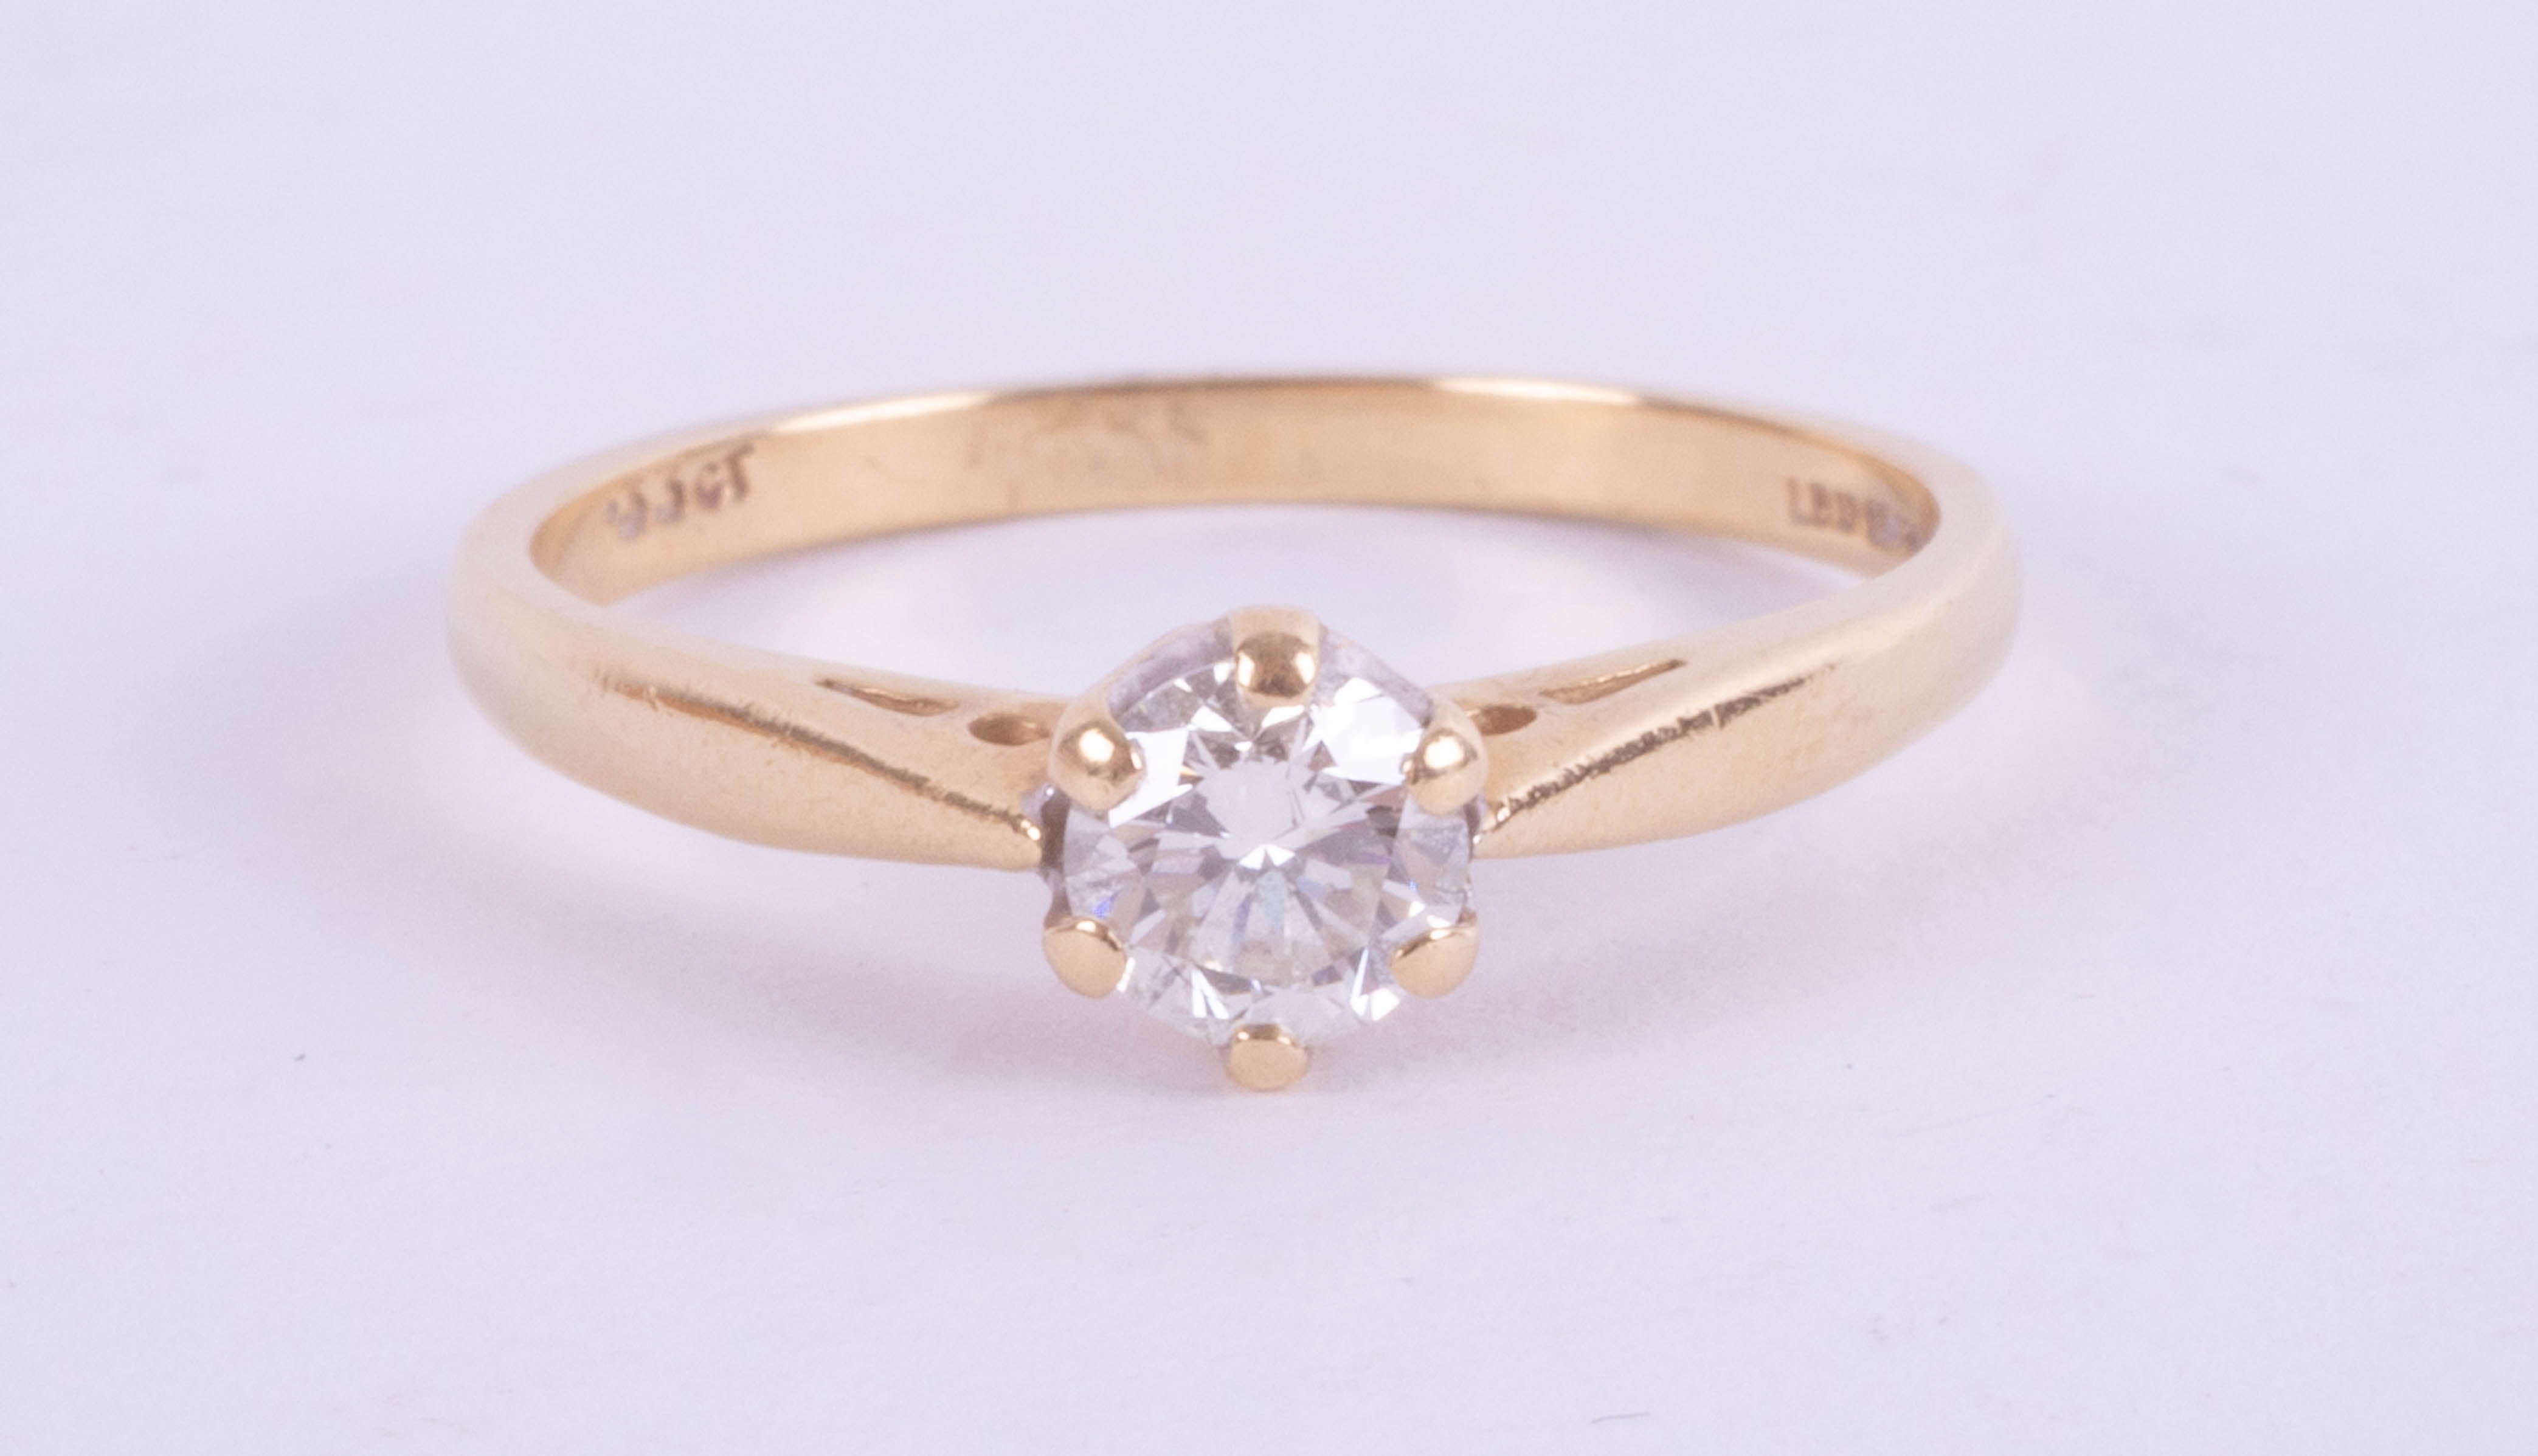 An 18ct yellow gold solitaire ring approx. 0.45ct, ring size K.